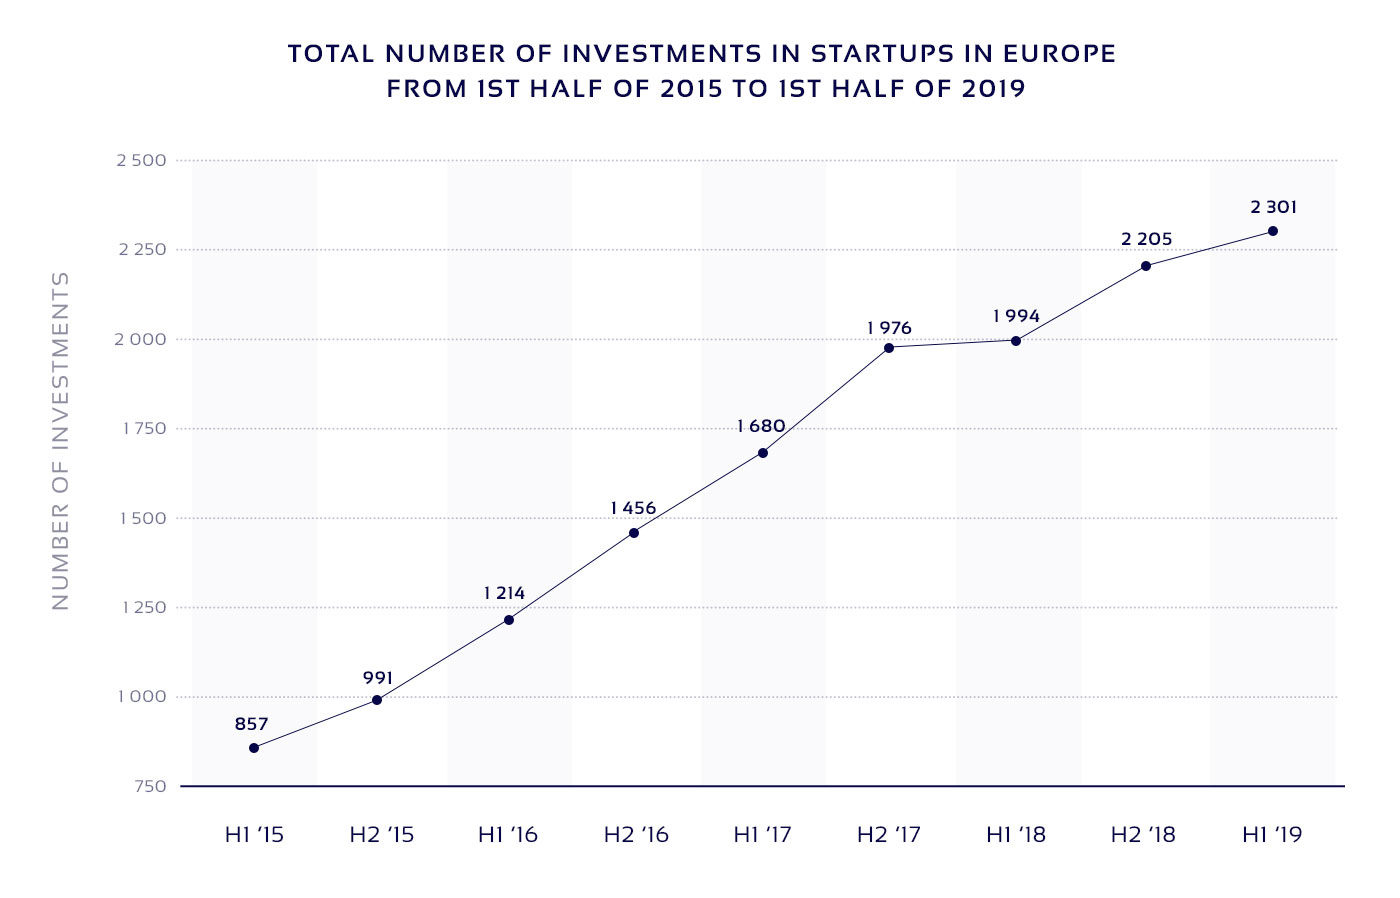 Investments in startups in Europe